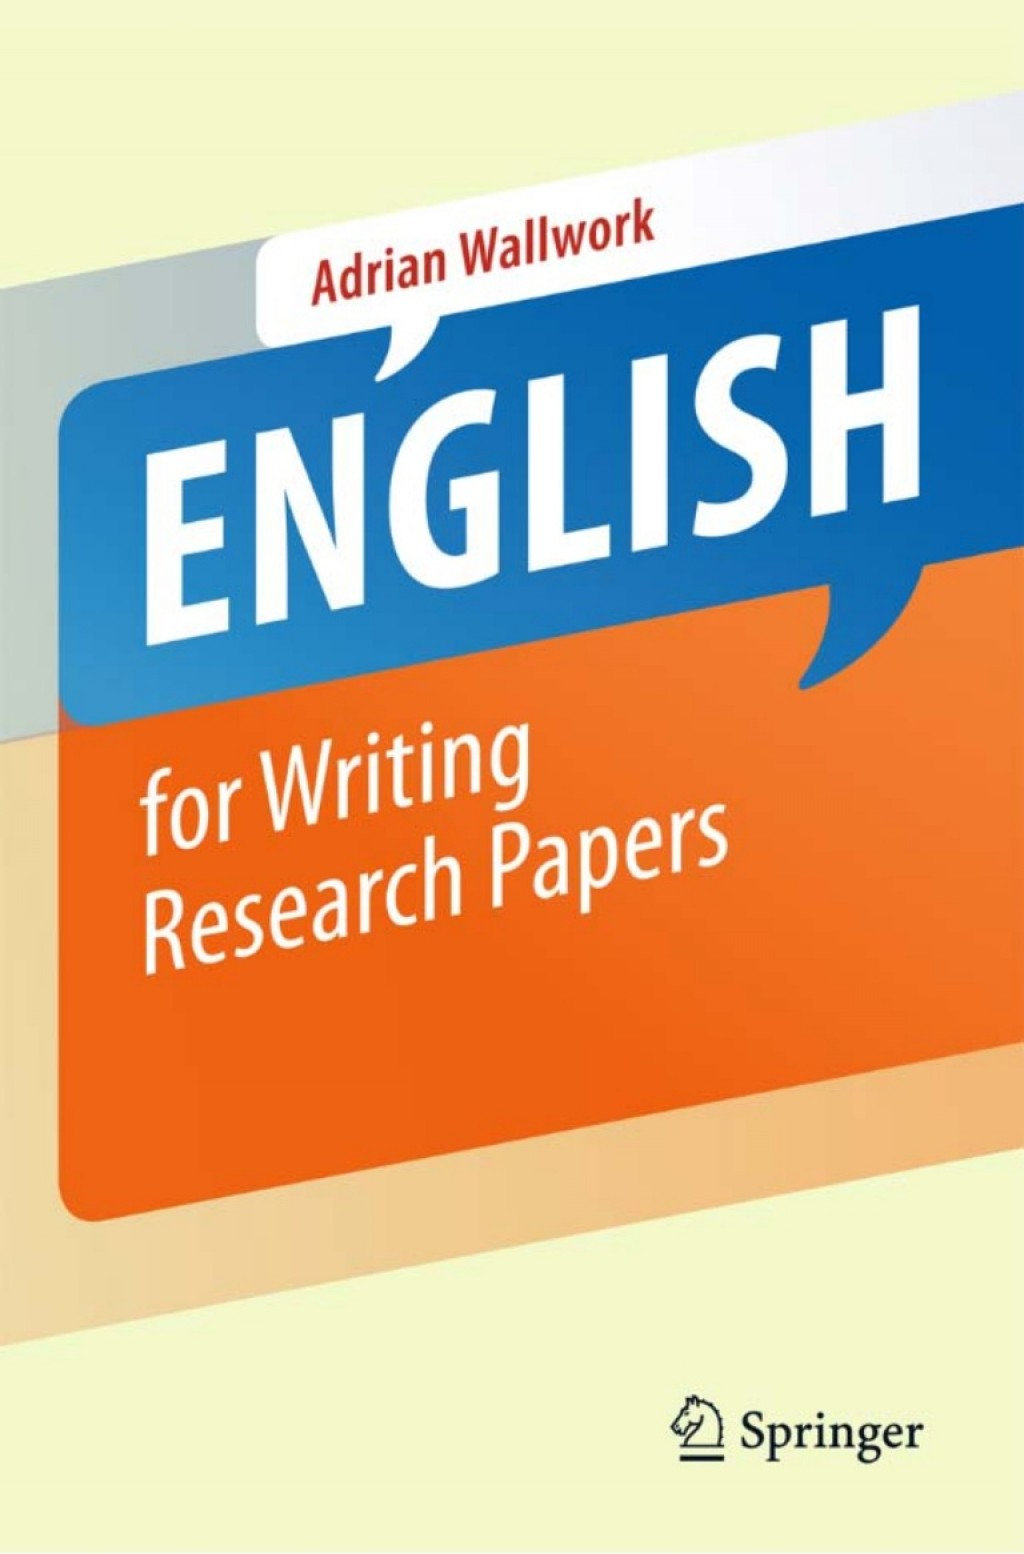 002 Englishforwritingresearchpapers Conversion Gate01 Thumbnail English For Writing Researchs Adrian Wallwork Pdf Marvelous Research Papers 2011 Large